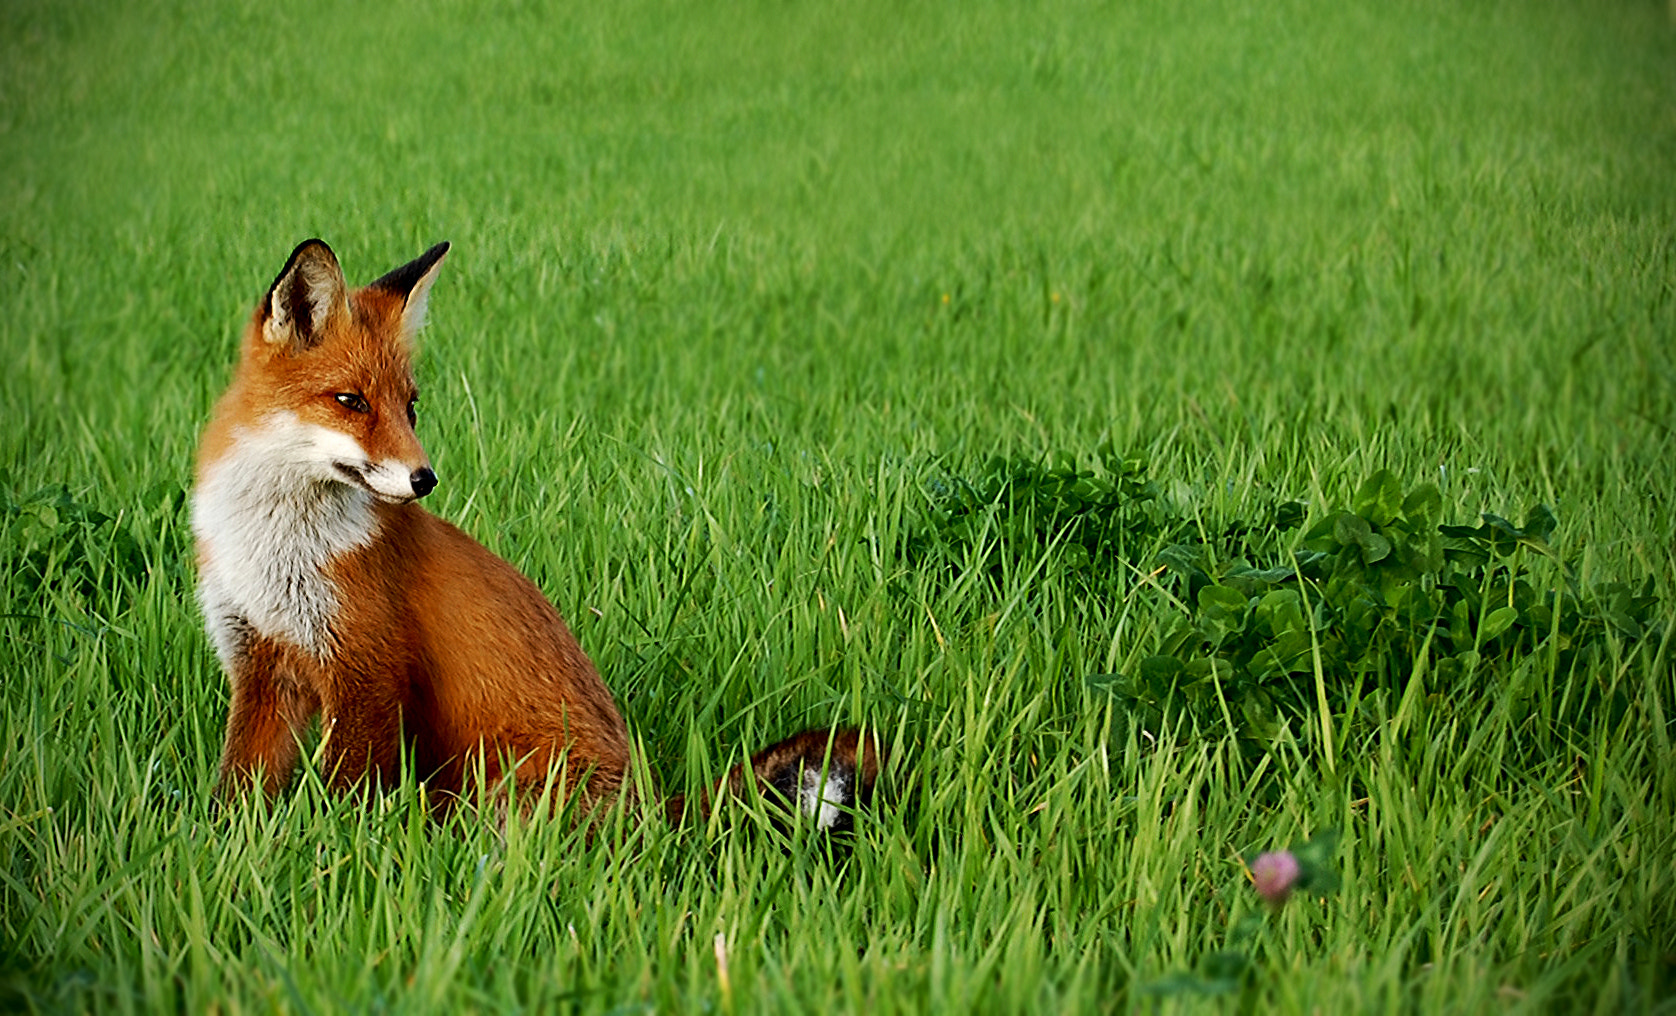 Photograph Swedish Red Fox. by Johan Berglund on 500px